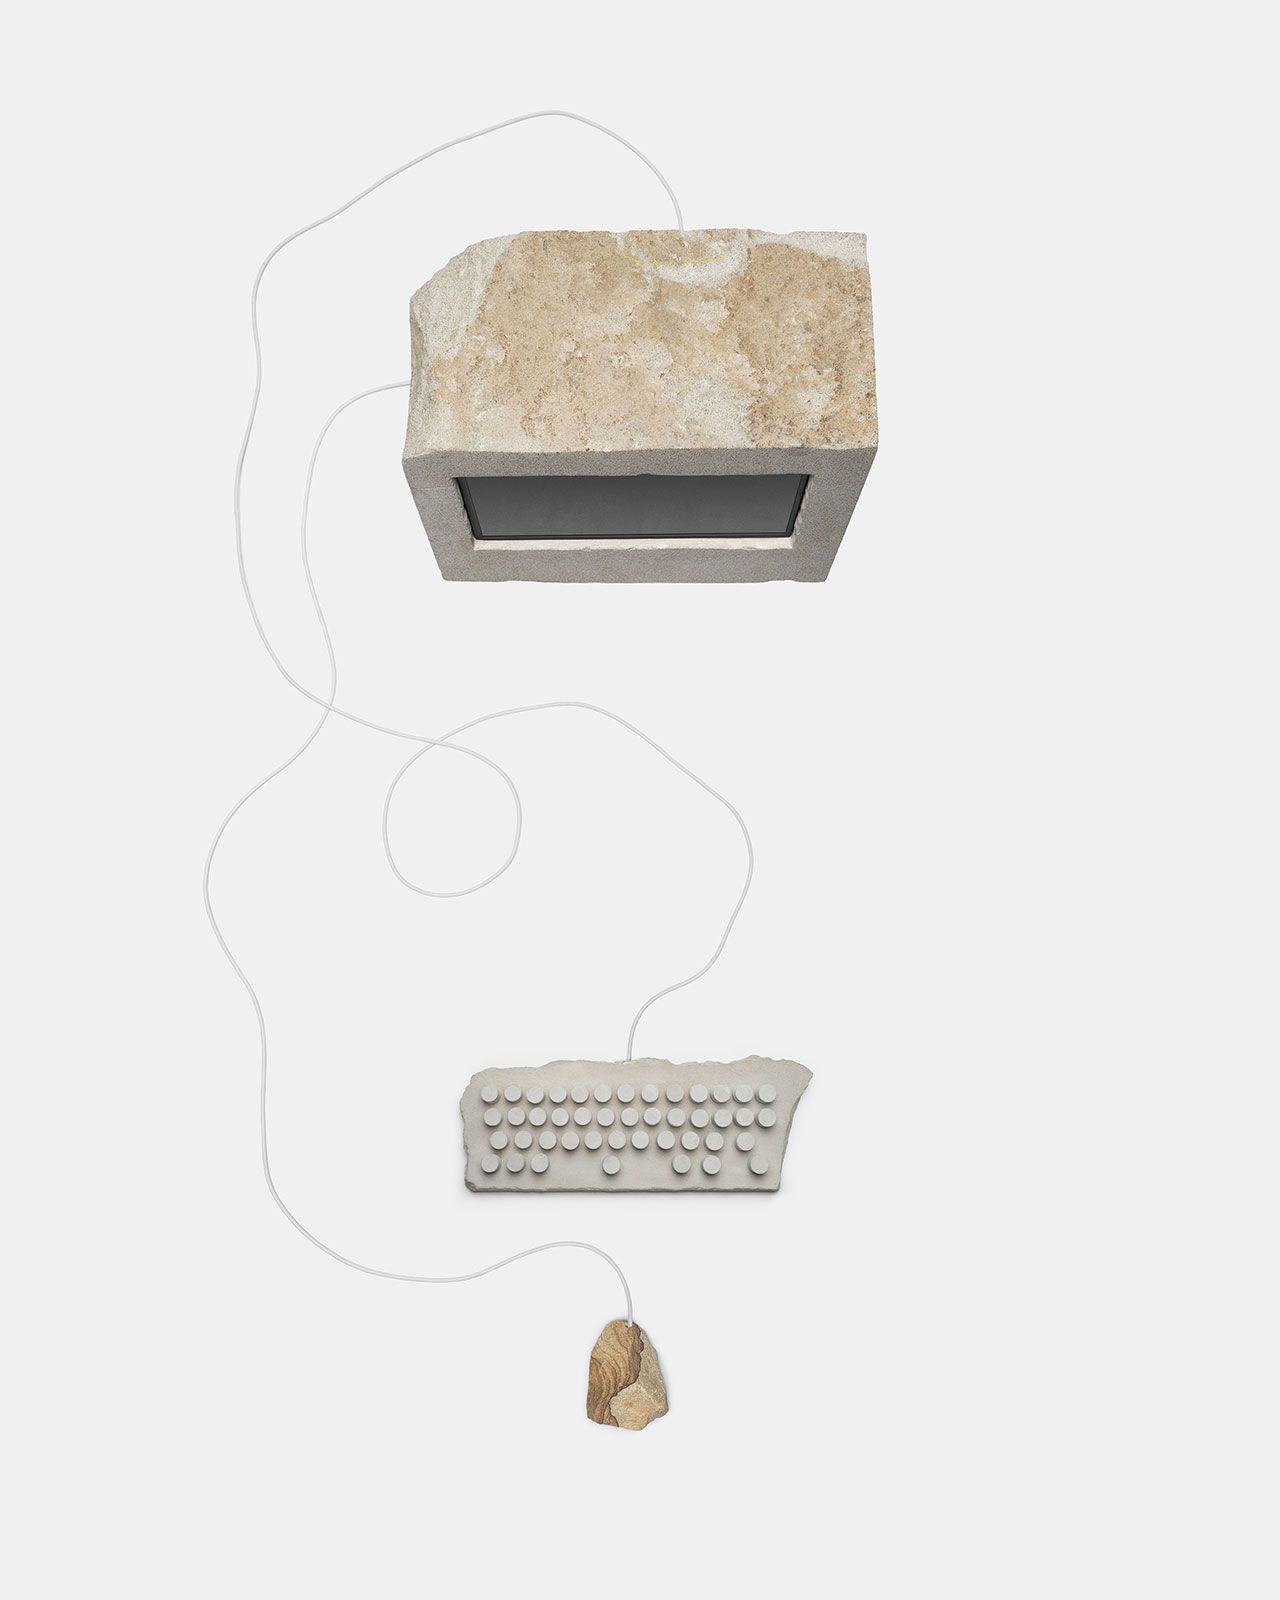 For the Rest of Us A project by Hank Beyer and Alex Sizemore. Sandstone.